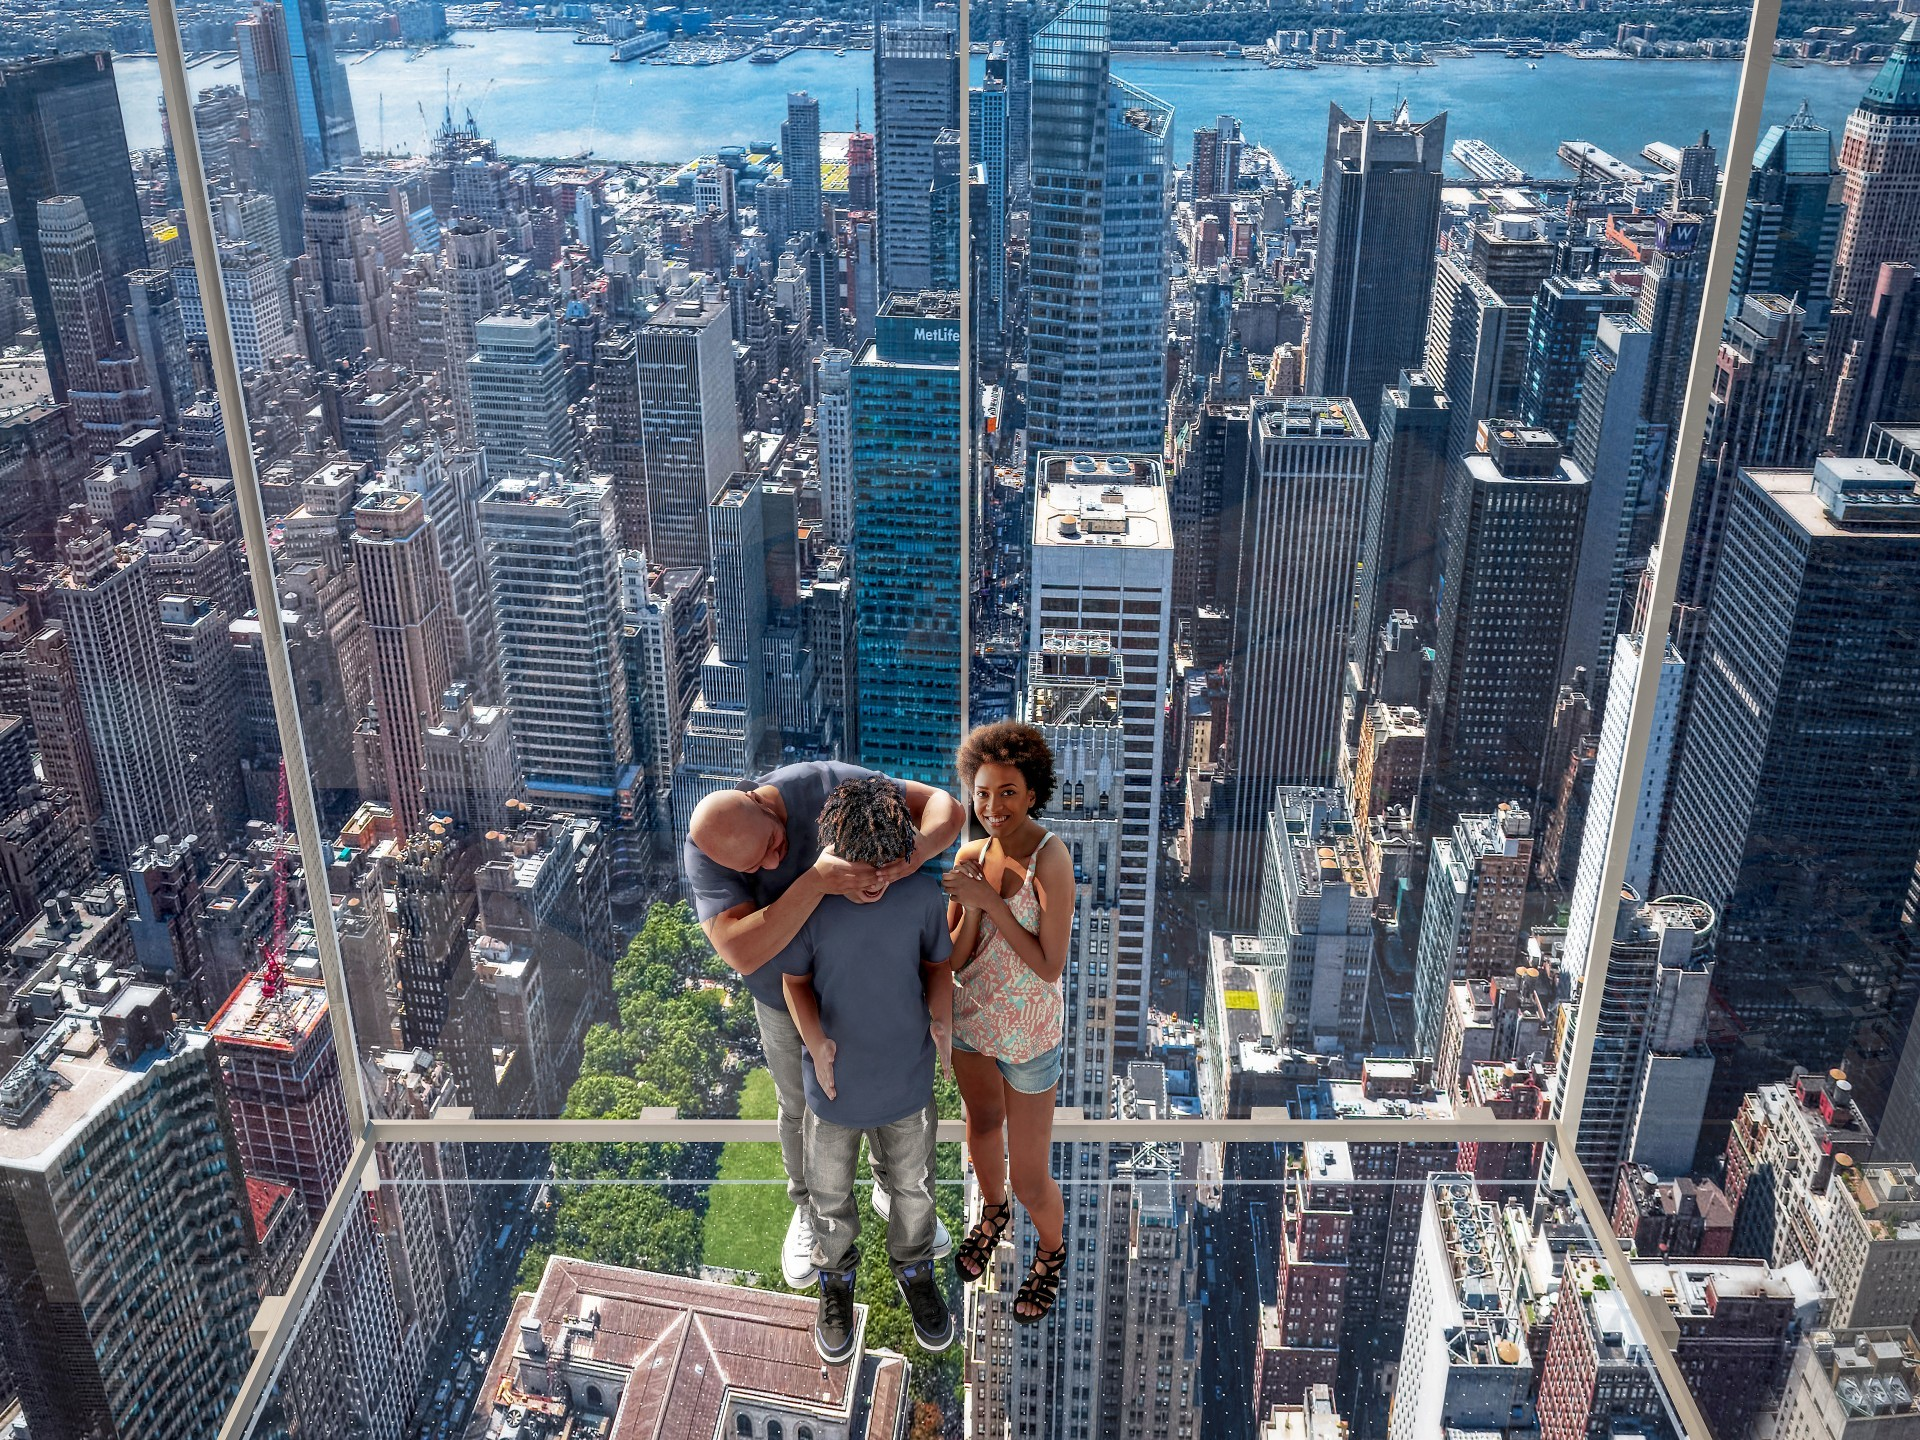 You'll be able to take a glass elevator to the top of a 1,401-foot skyscraper this fall